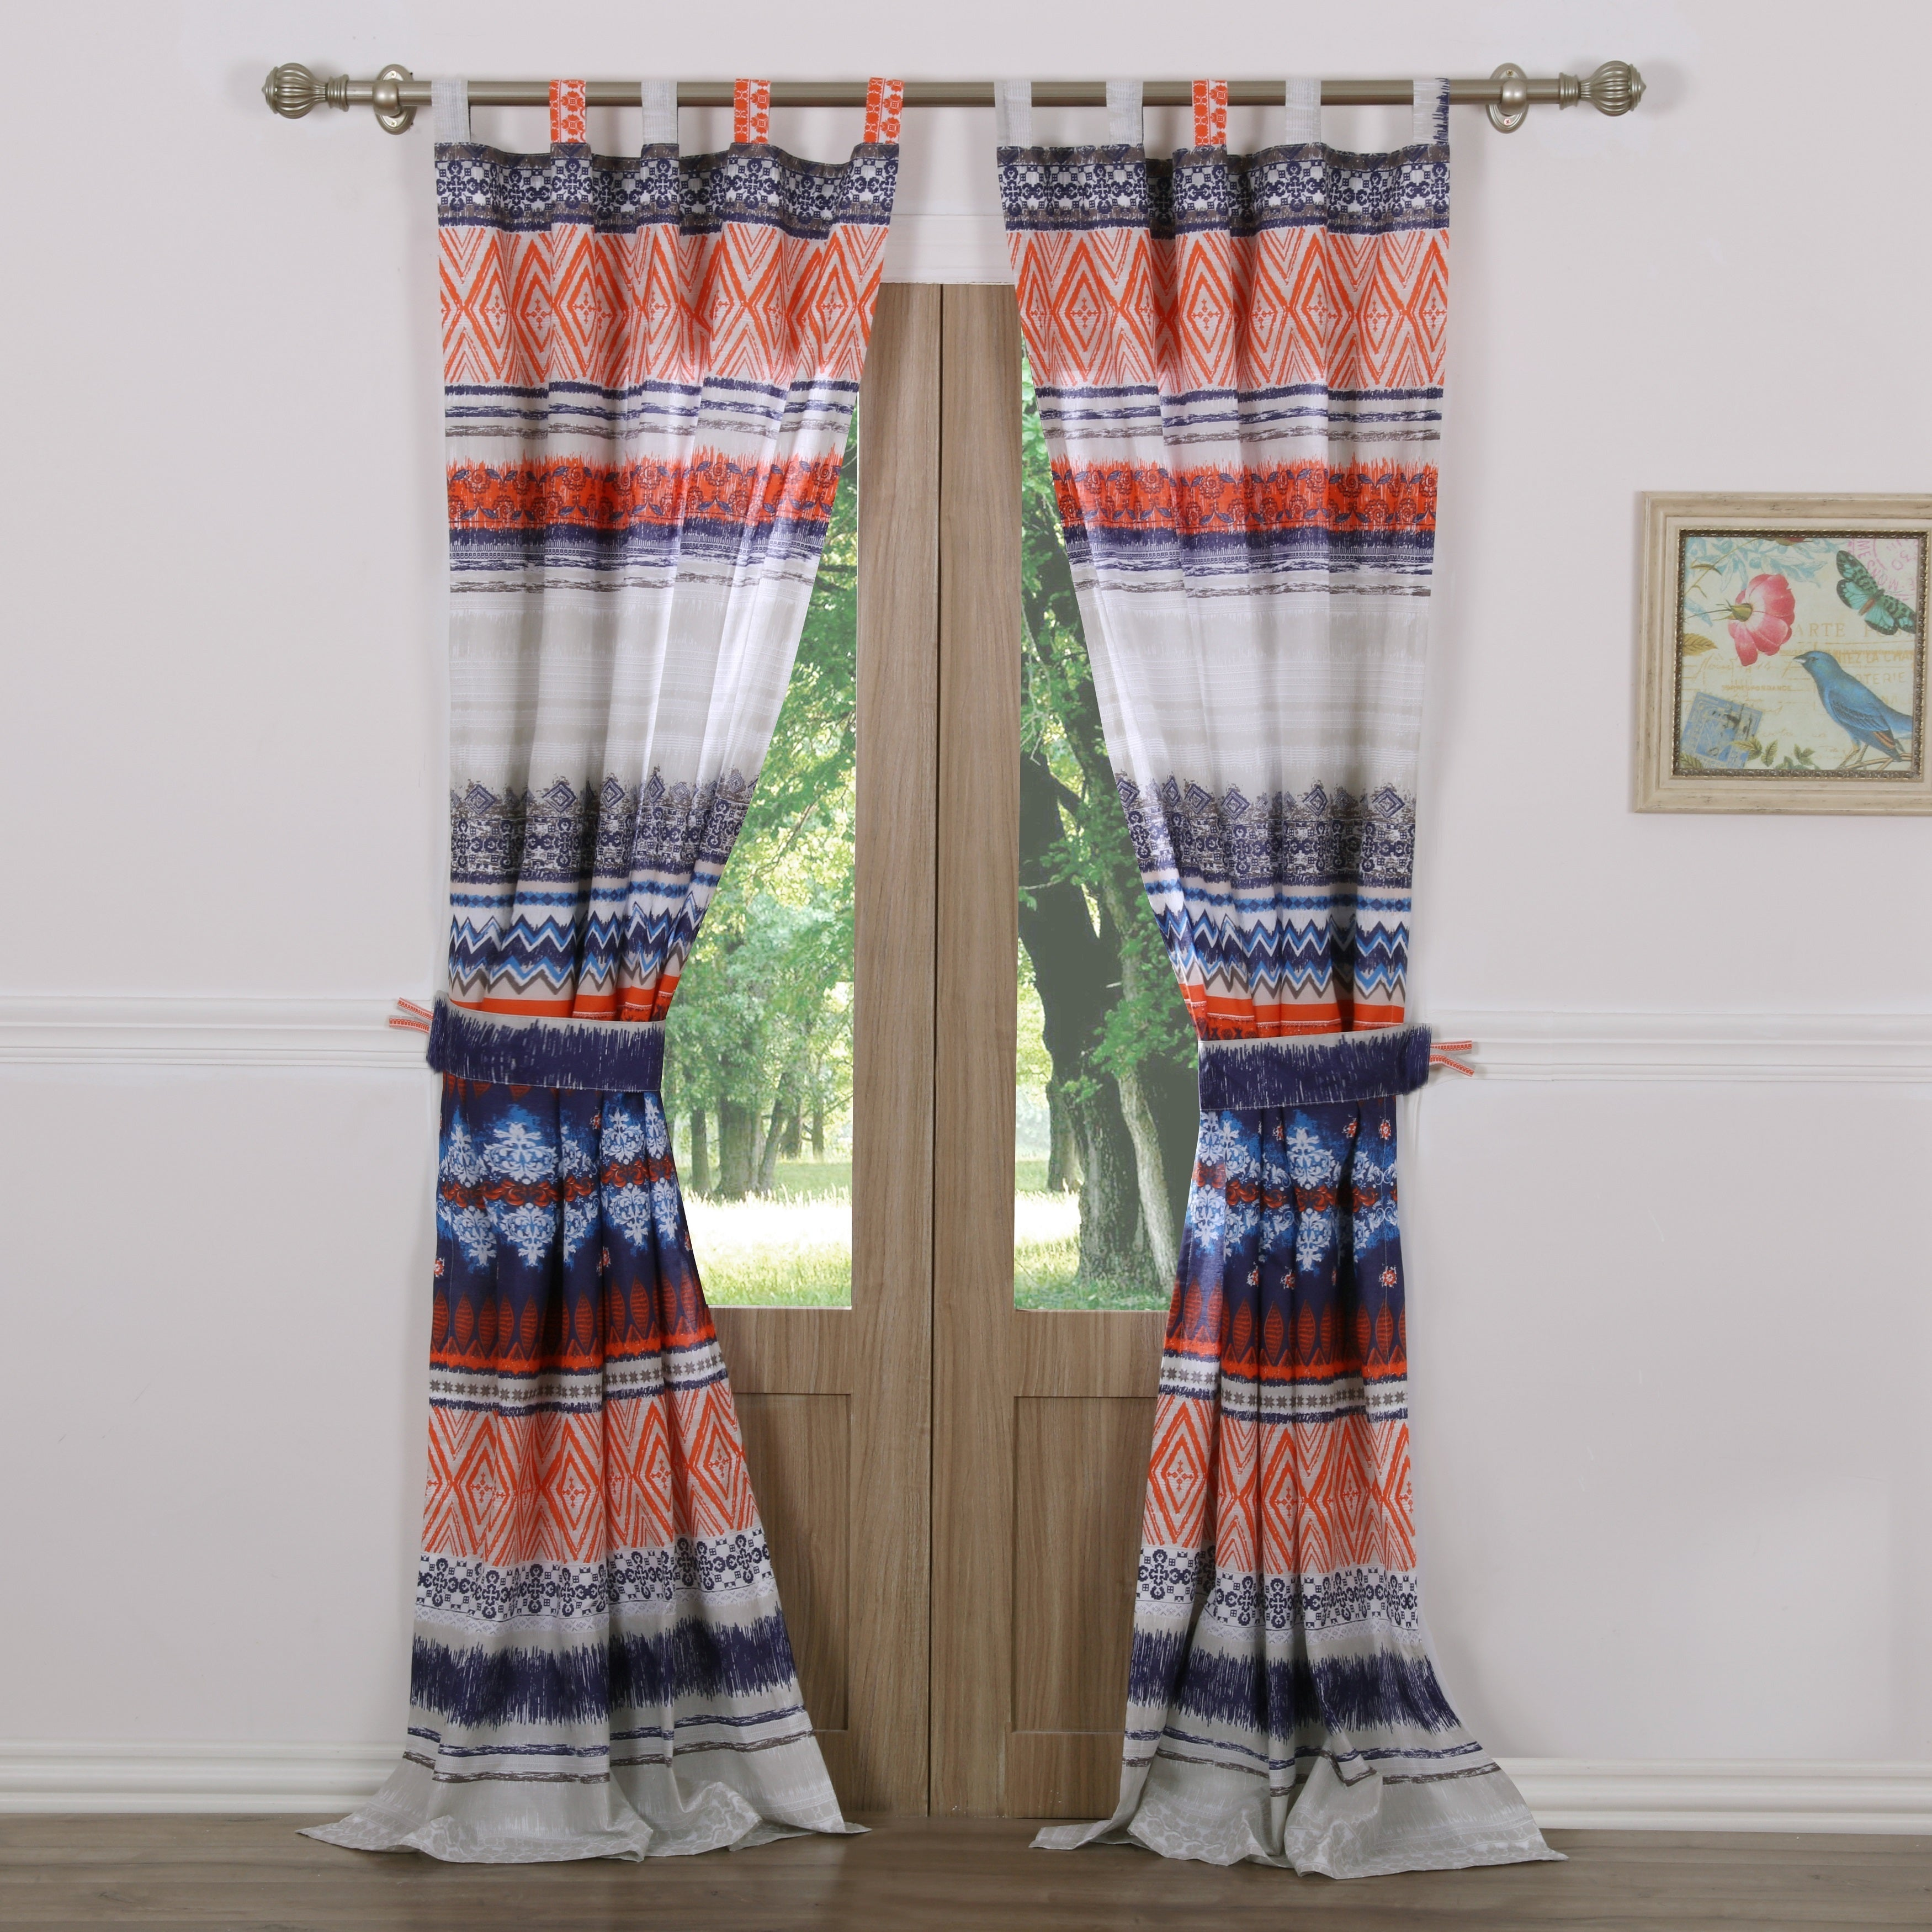 org plaid design home deltaangelgroup avarii valance furniture curtain curtains ideas checkered best